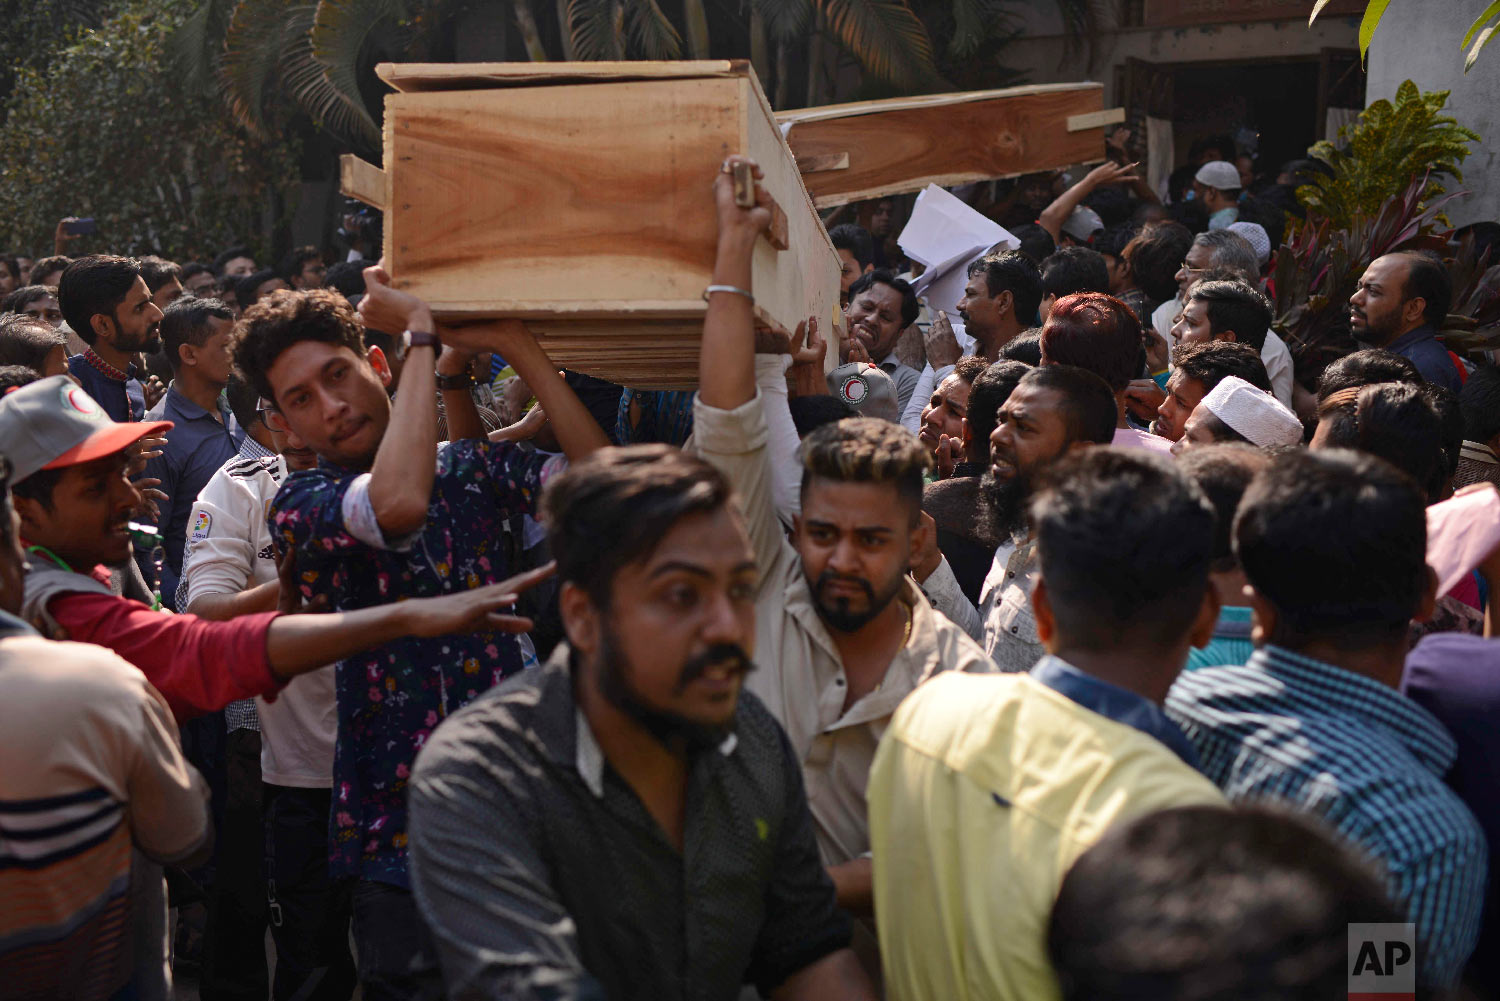 Bangladeshis carry coffins of relatives out from a morgue after they were killed in a fire in Dhaka, Bangladesh, Thursday, Feb. 21, 2019. (AP Photo/Mahmud Hossain Opu)